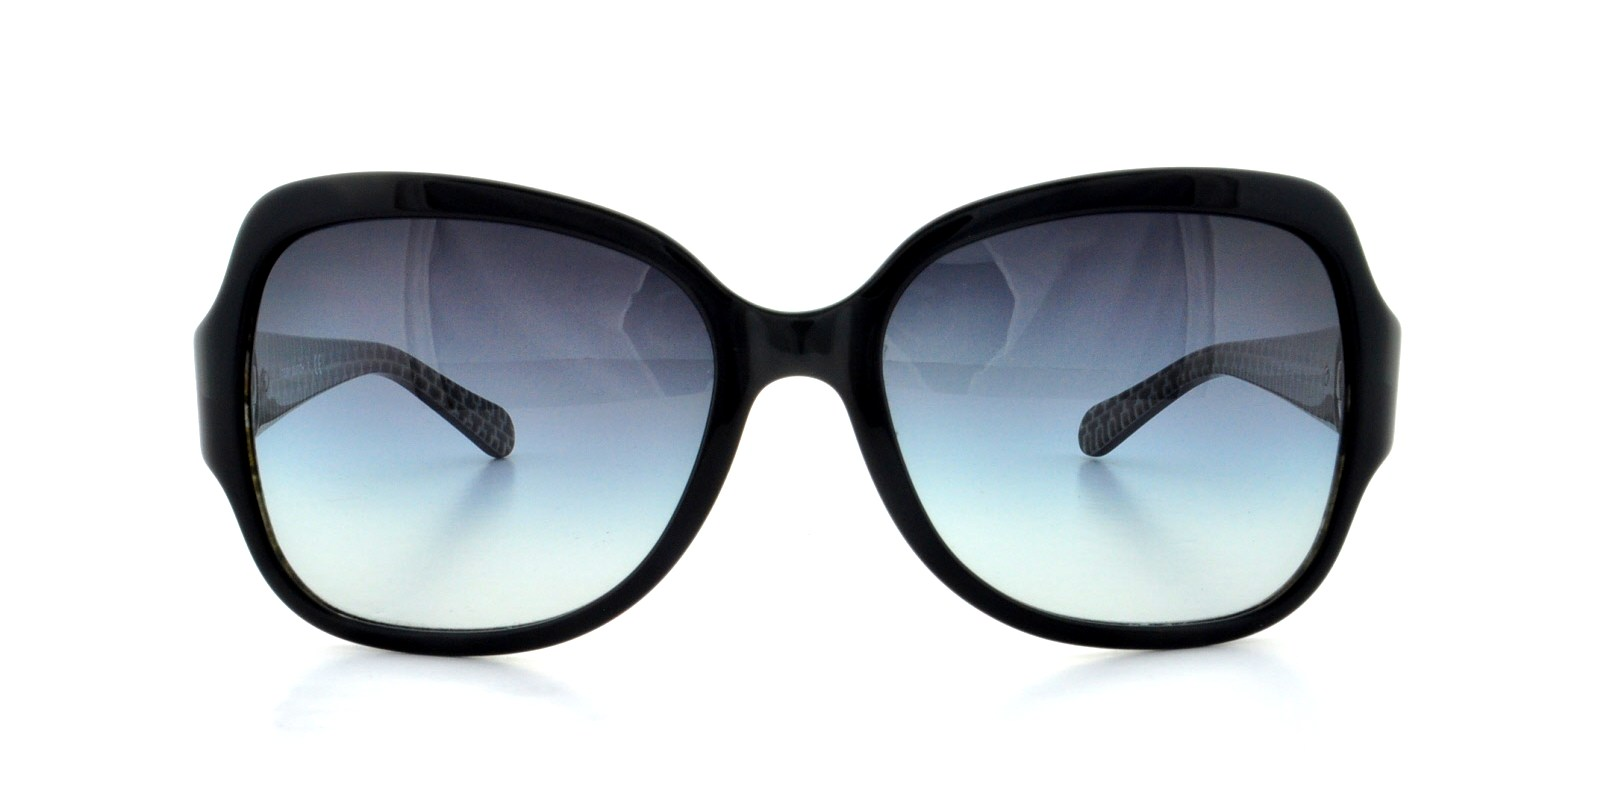 e520bf4824aa7 Designer Frames Outlet. Tory Burch TY7059